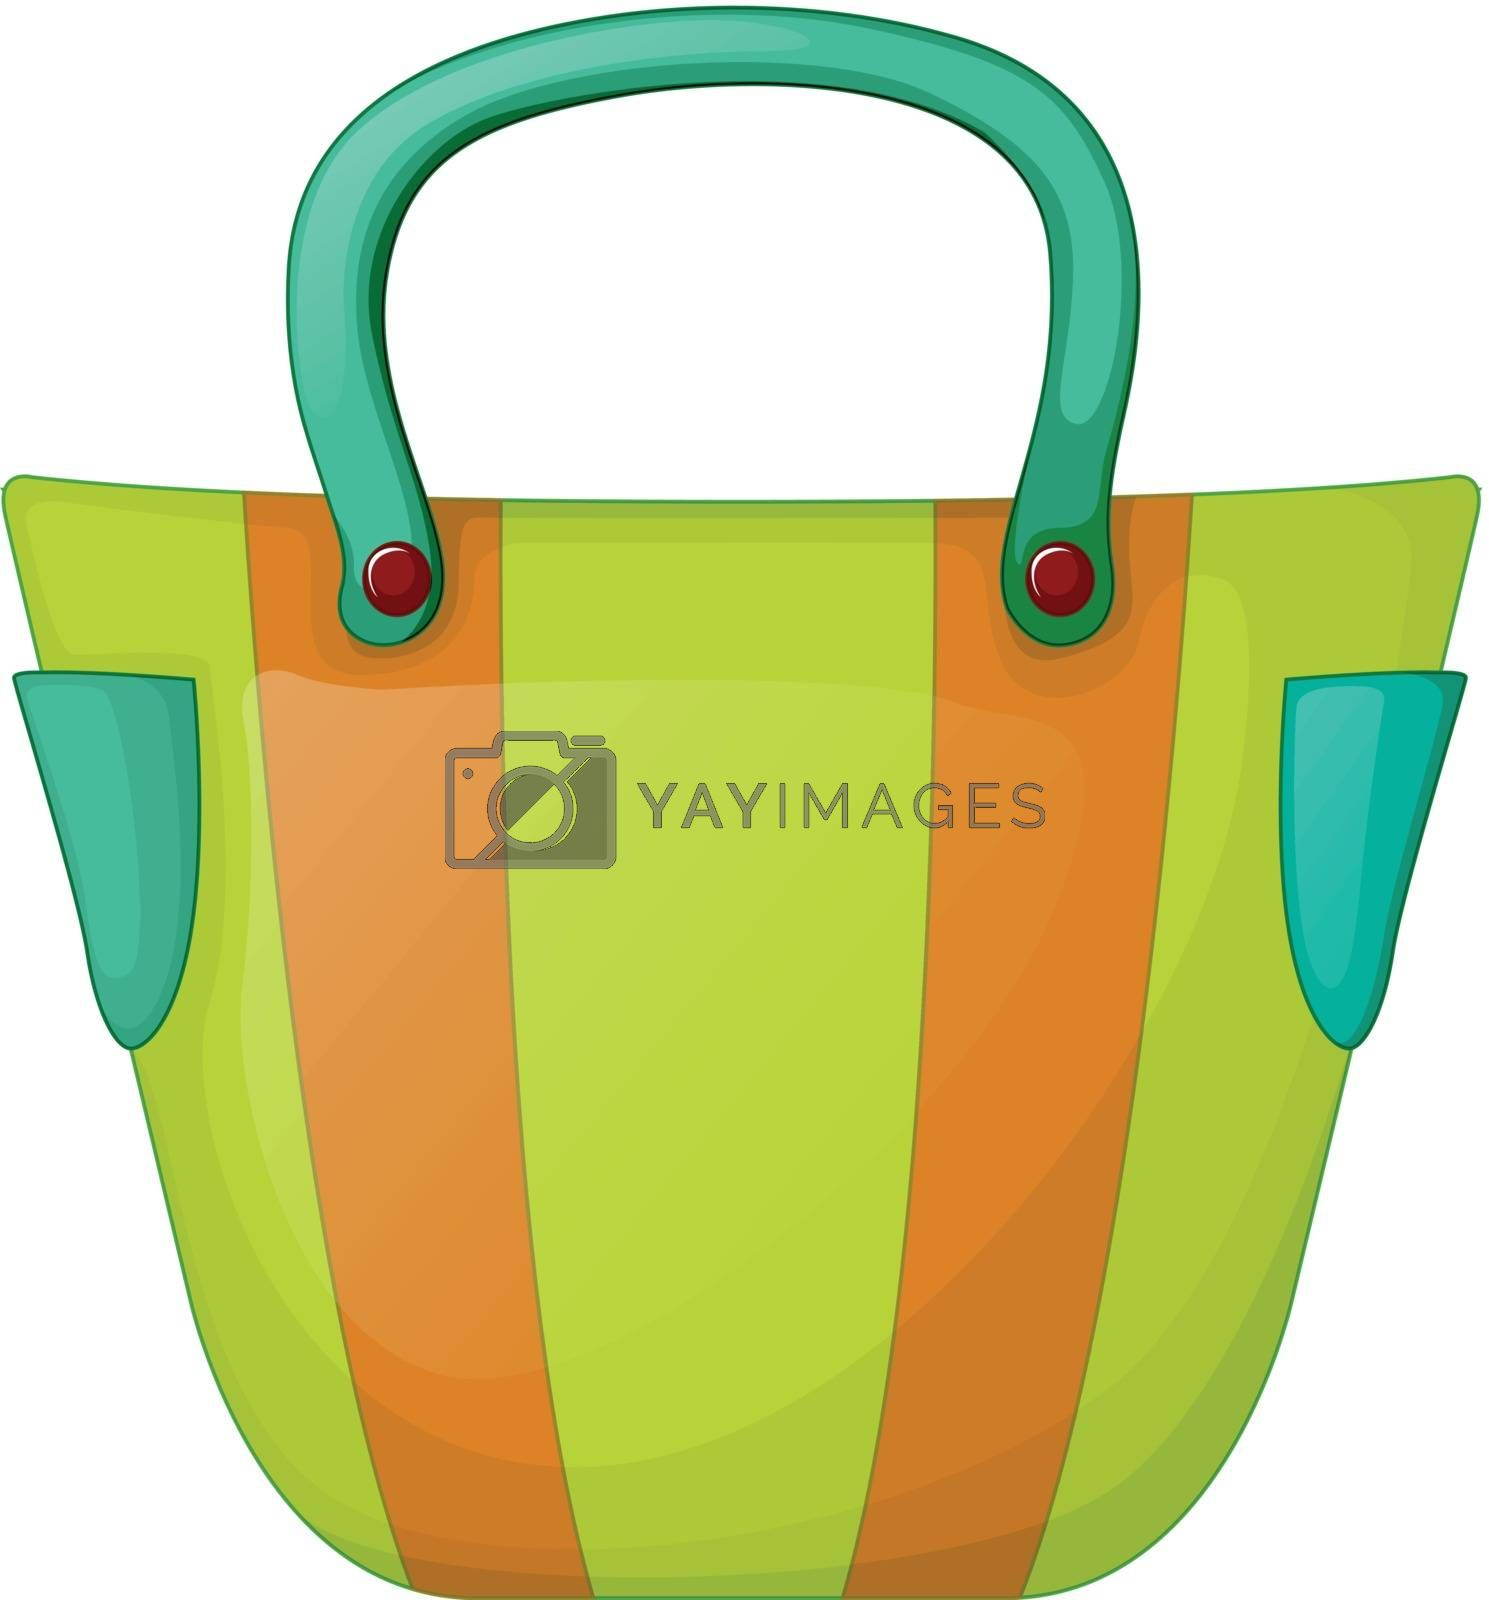 Illustration of a colorful fashion bag on a white background